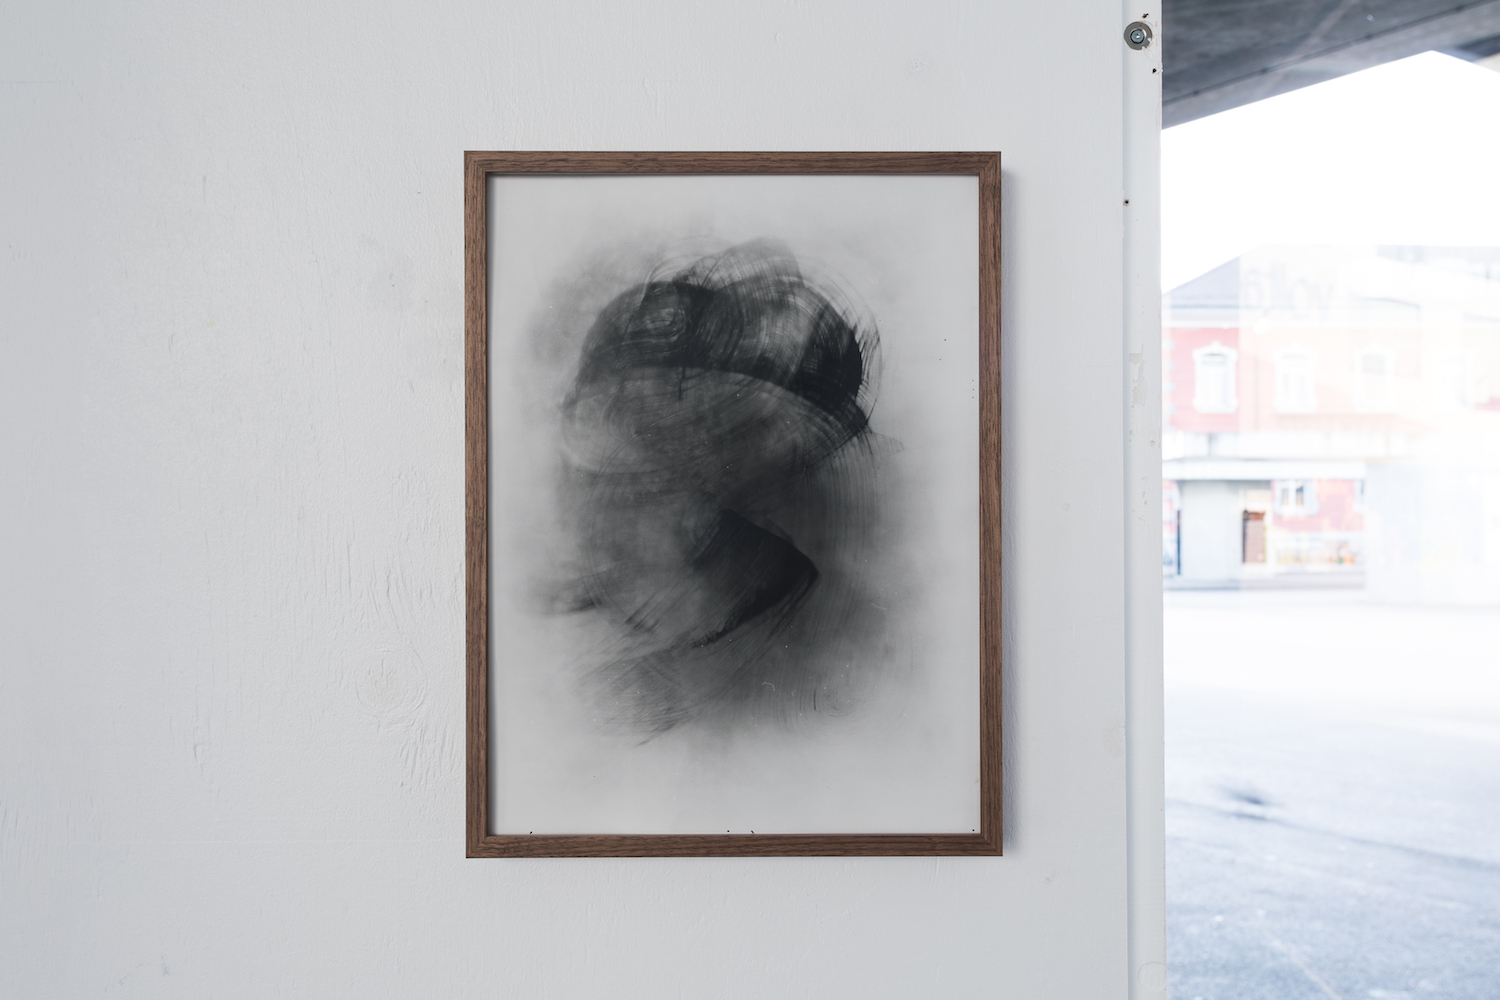 Wil Murray, Well Eel Test 3, 2019. Silver Gelatin Print on Fiber Based Paper. Framed. Exposed for between 3-4 weeks. 40 x 30 cm. Photographer: Nicolas Gysin.